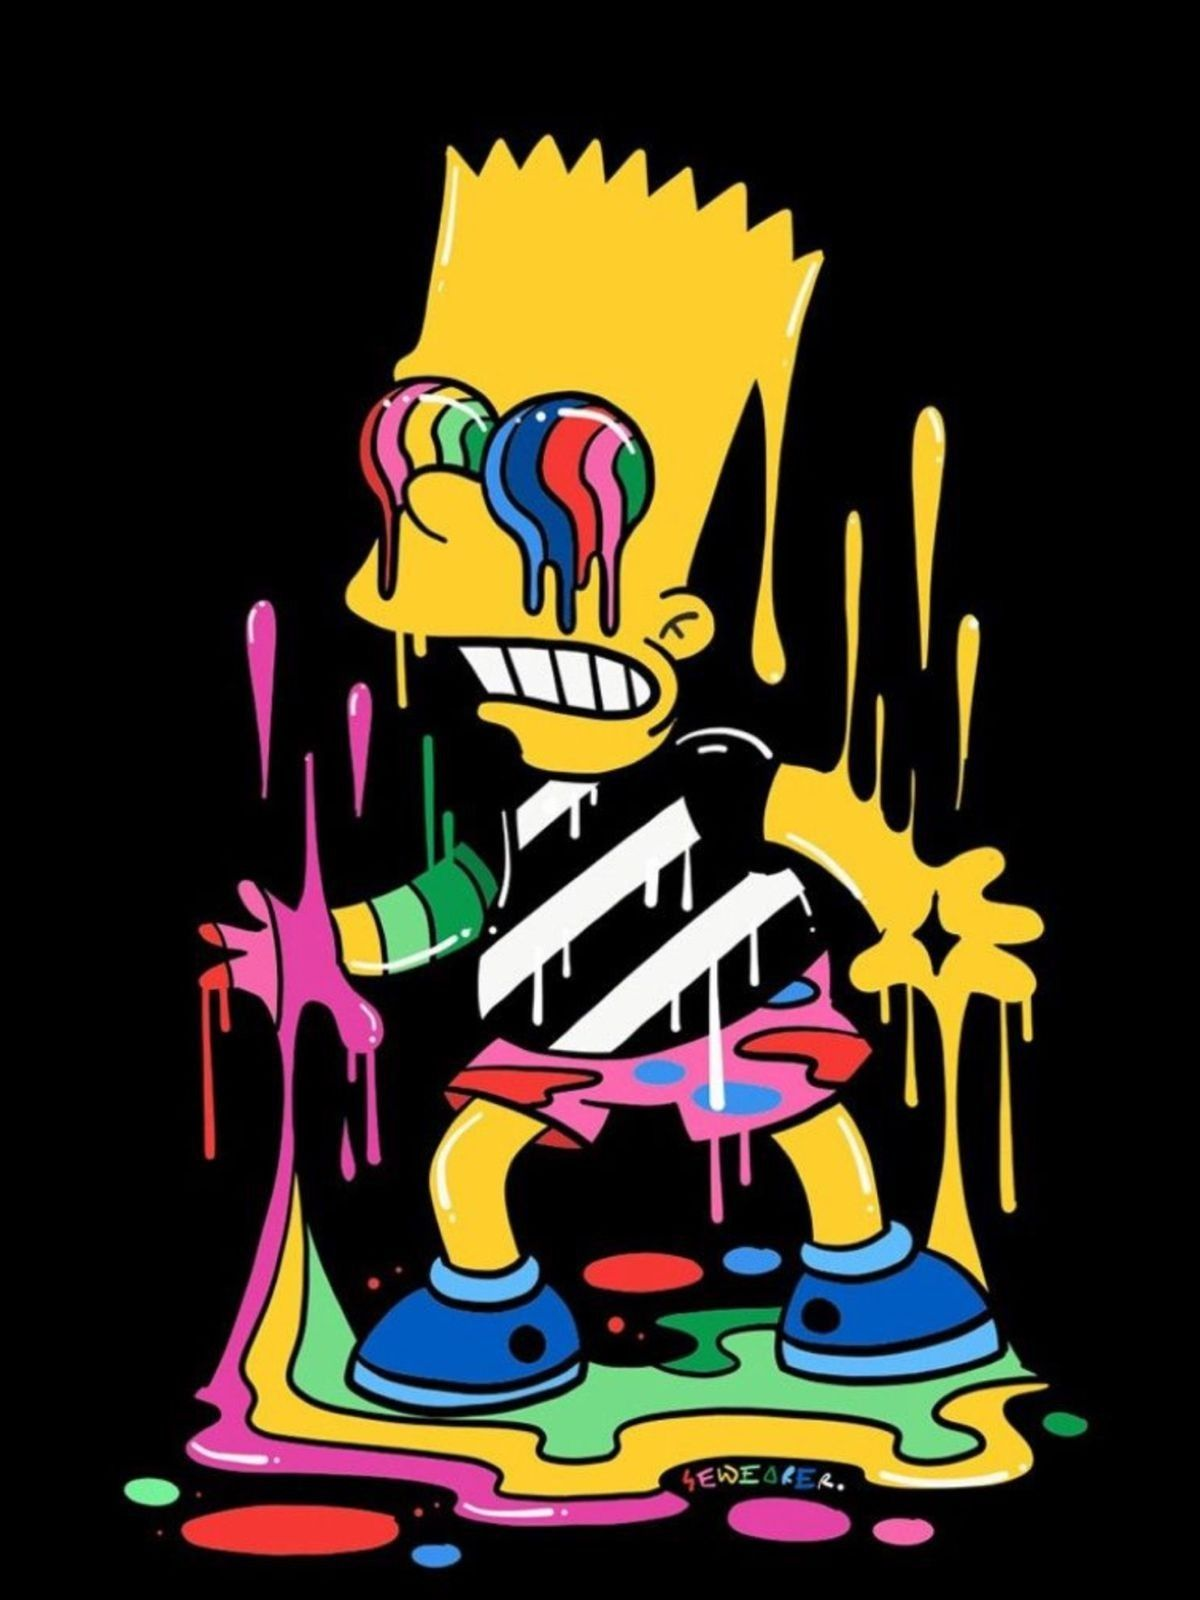 Pin By Osman Joel On Fondo De Pantalla Simpson Simpsons Art Bart Simpson Art Simpsons Drawings